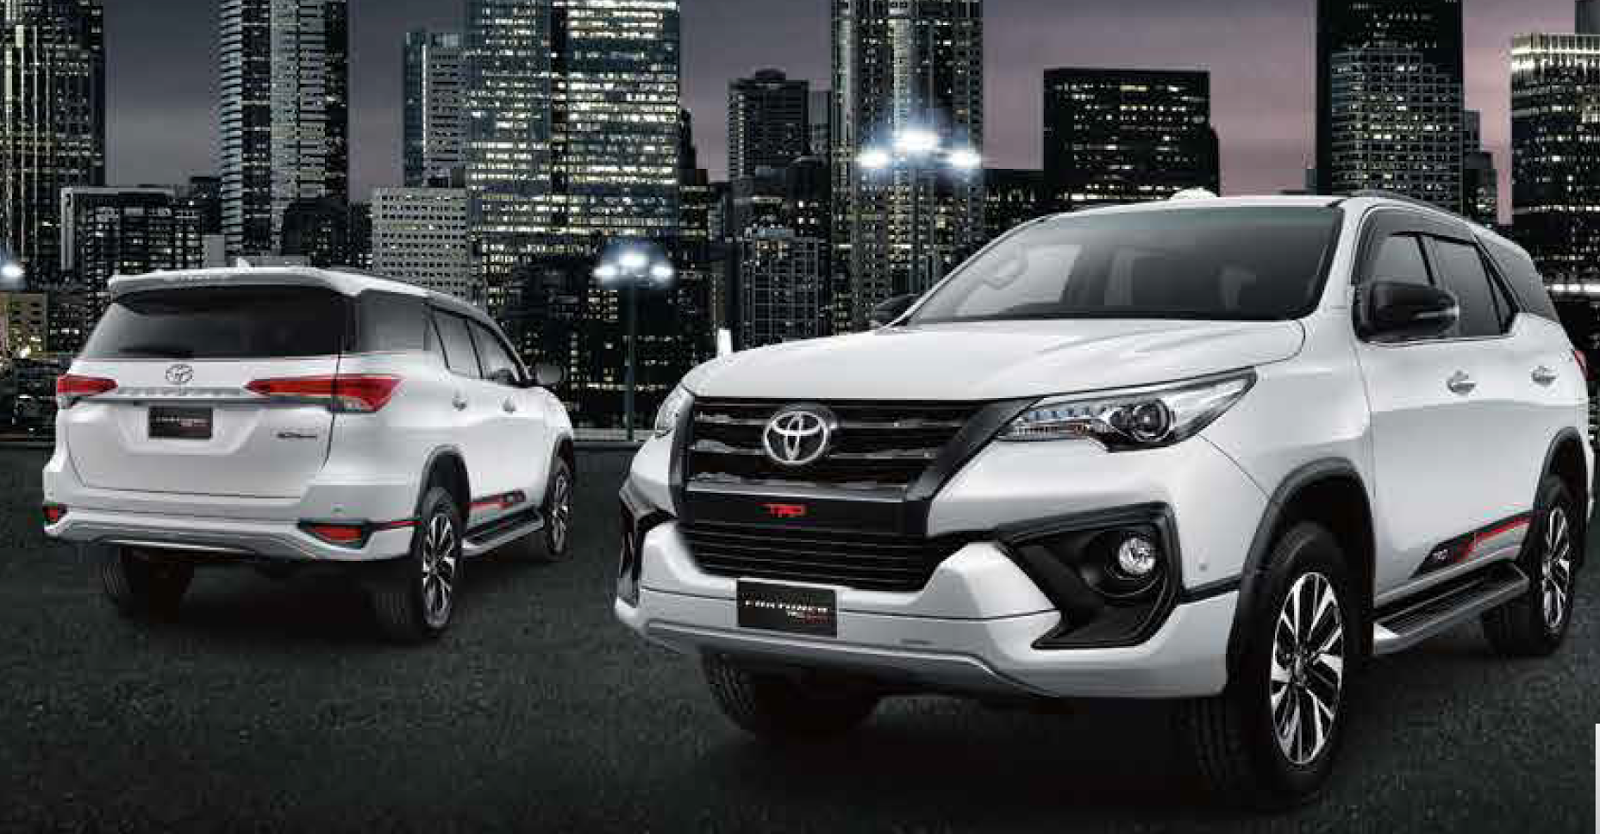 New Agya Trd 2018 All Kijang Innova 2.0 Q At Fortuner 2017 Spesifikasi Harga Toyota Auto 2000